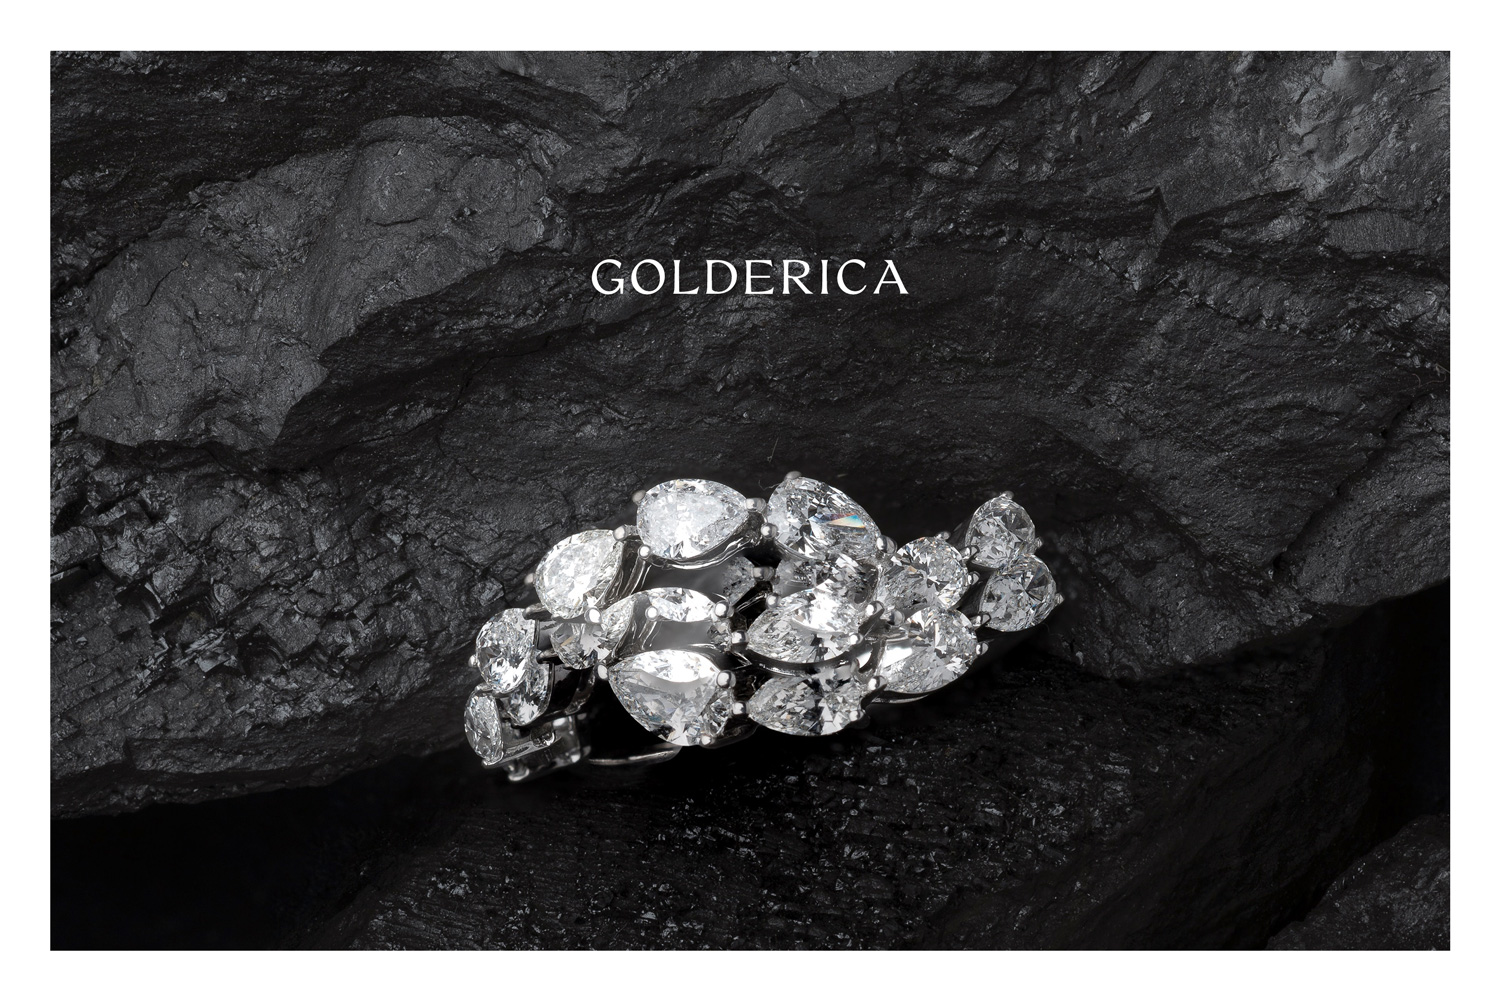 Golderica Jewelry Brand Ad Mockup by Everything Here Now